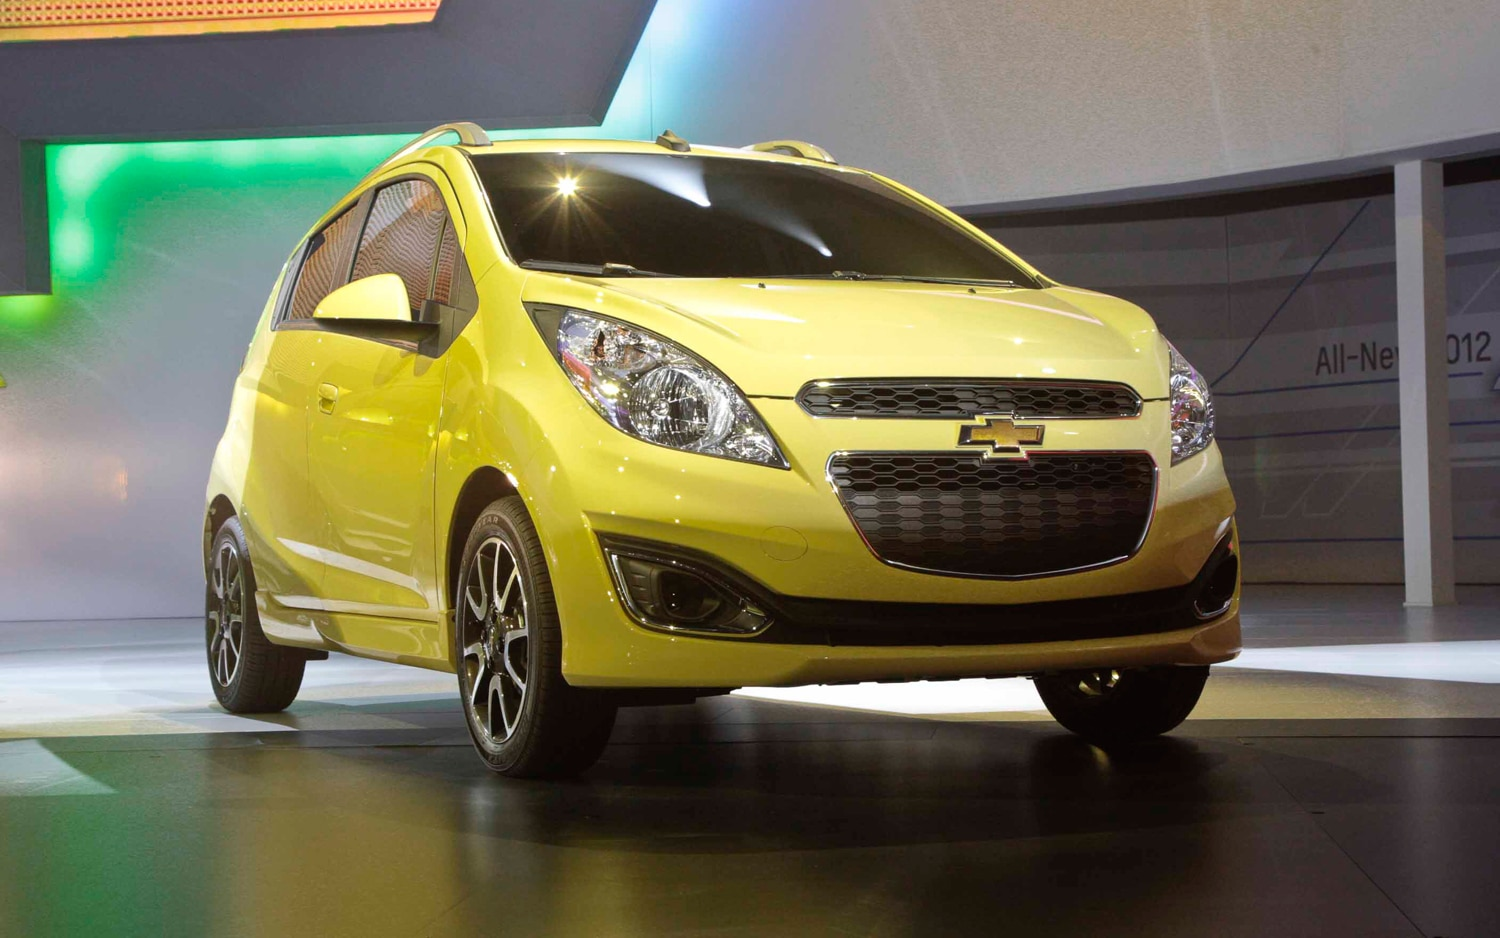 2013 Chevrolet Spark - First Look - Automobile Magazine